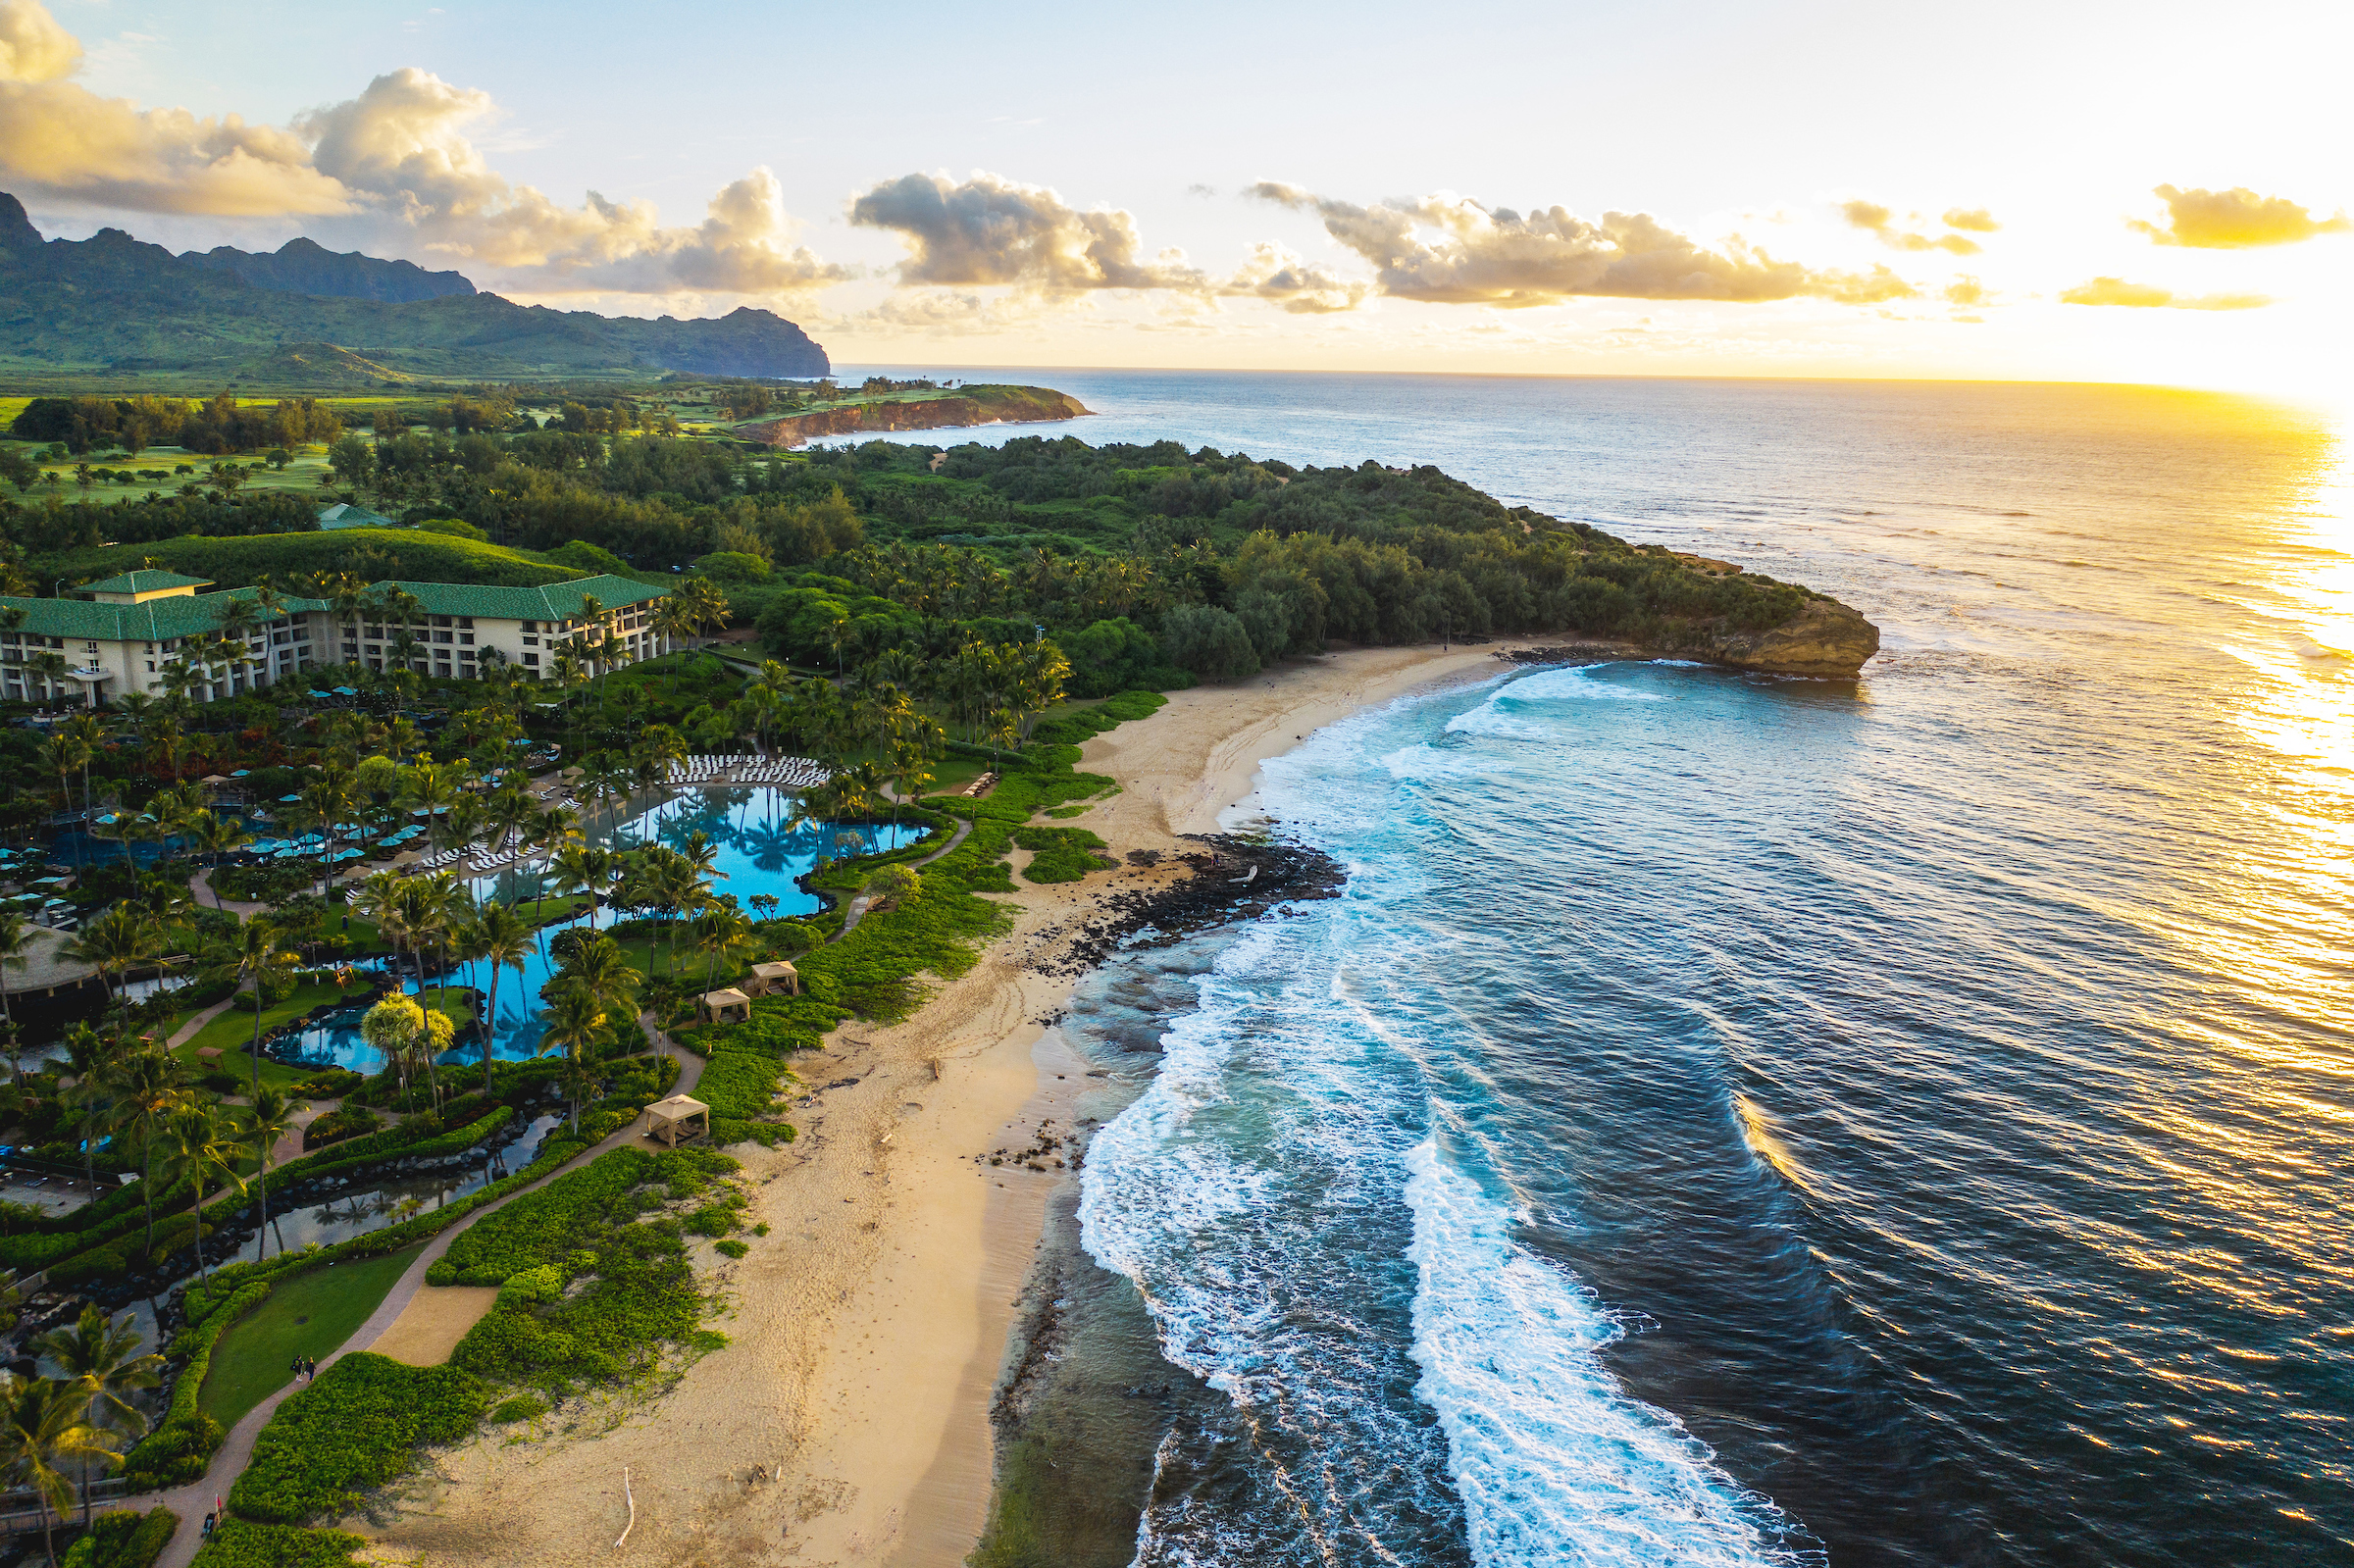 GRAND_HYATT_KAUAI_AERIAL_CLIFF_JK.jpg